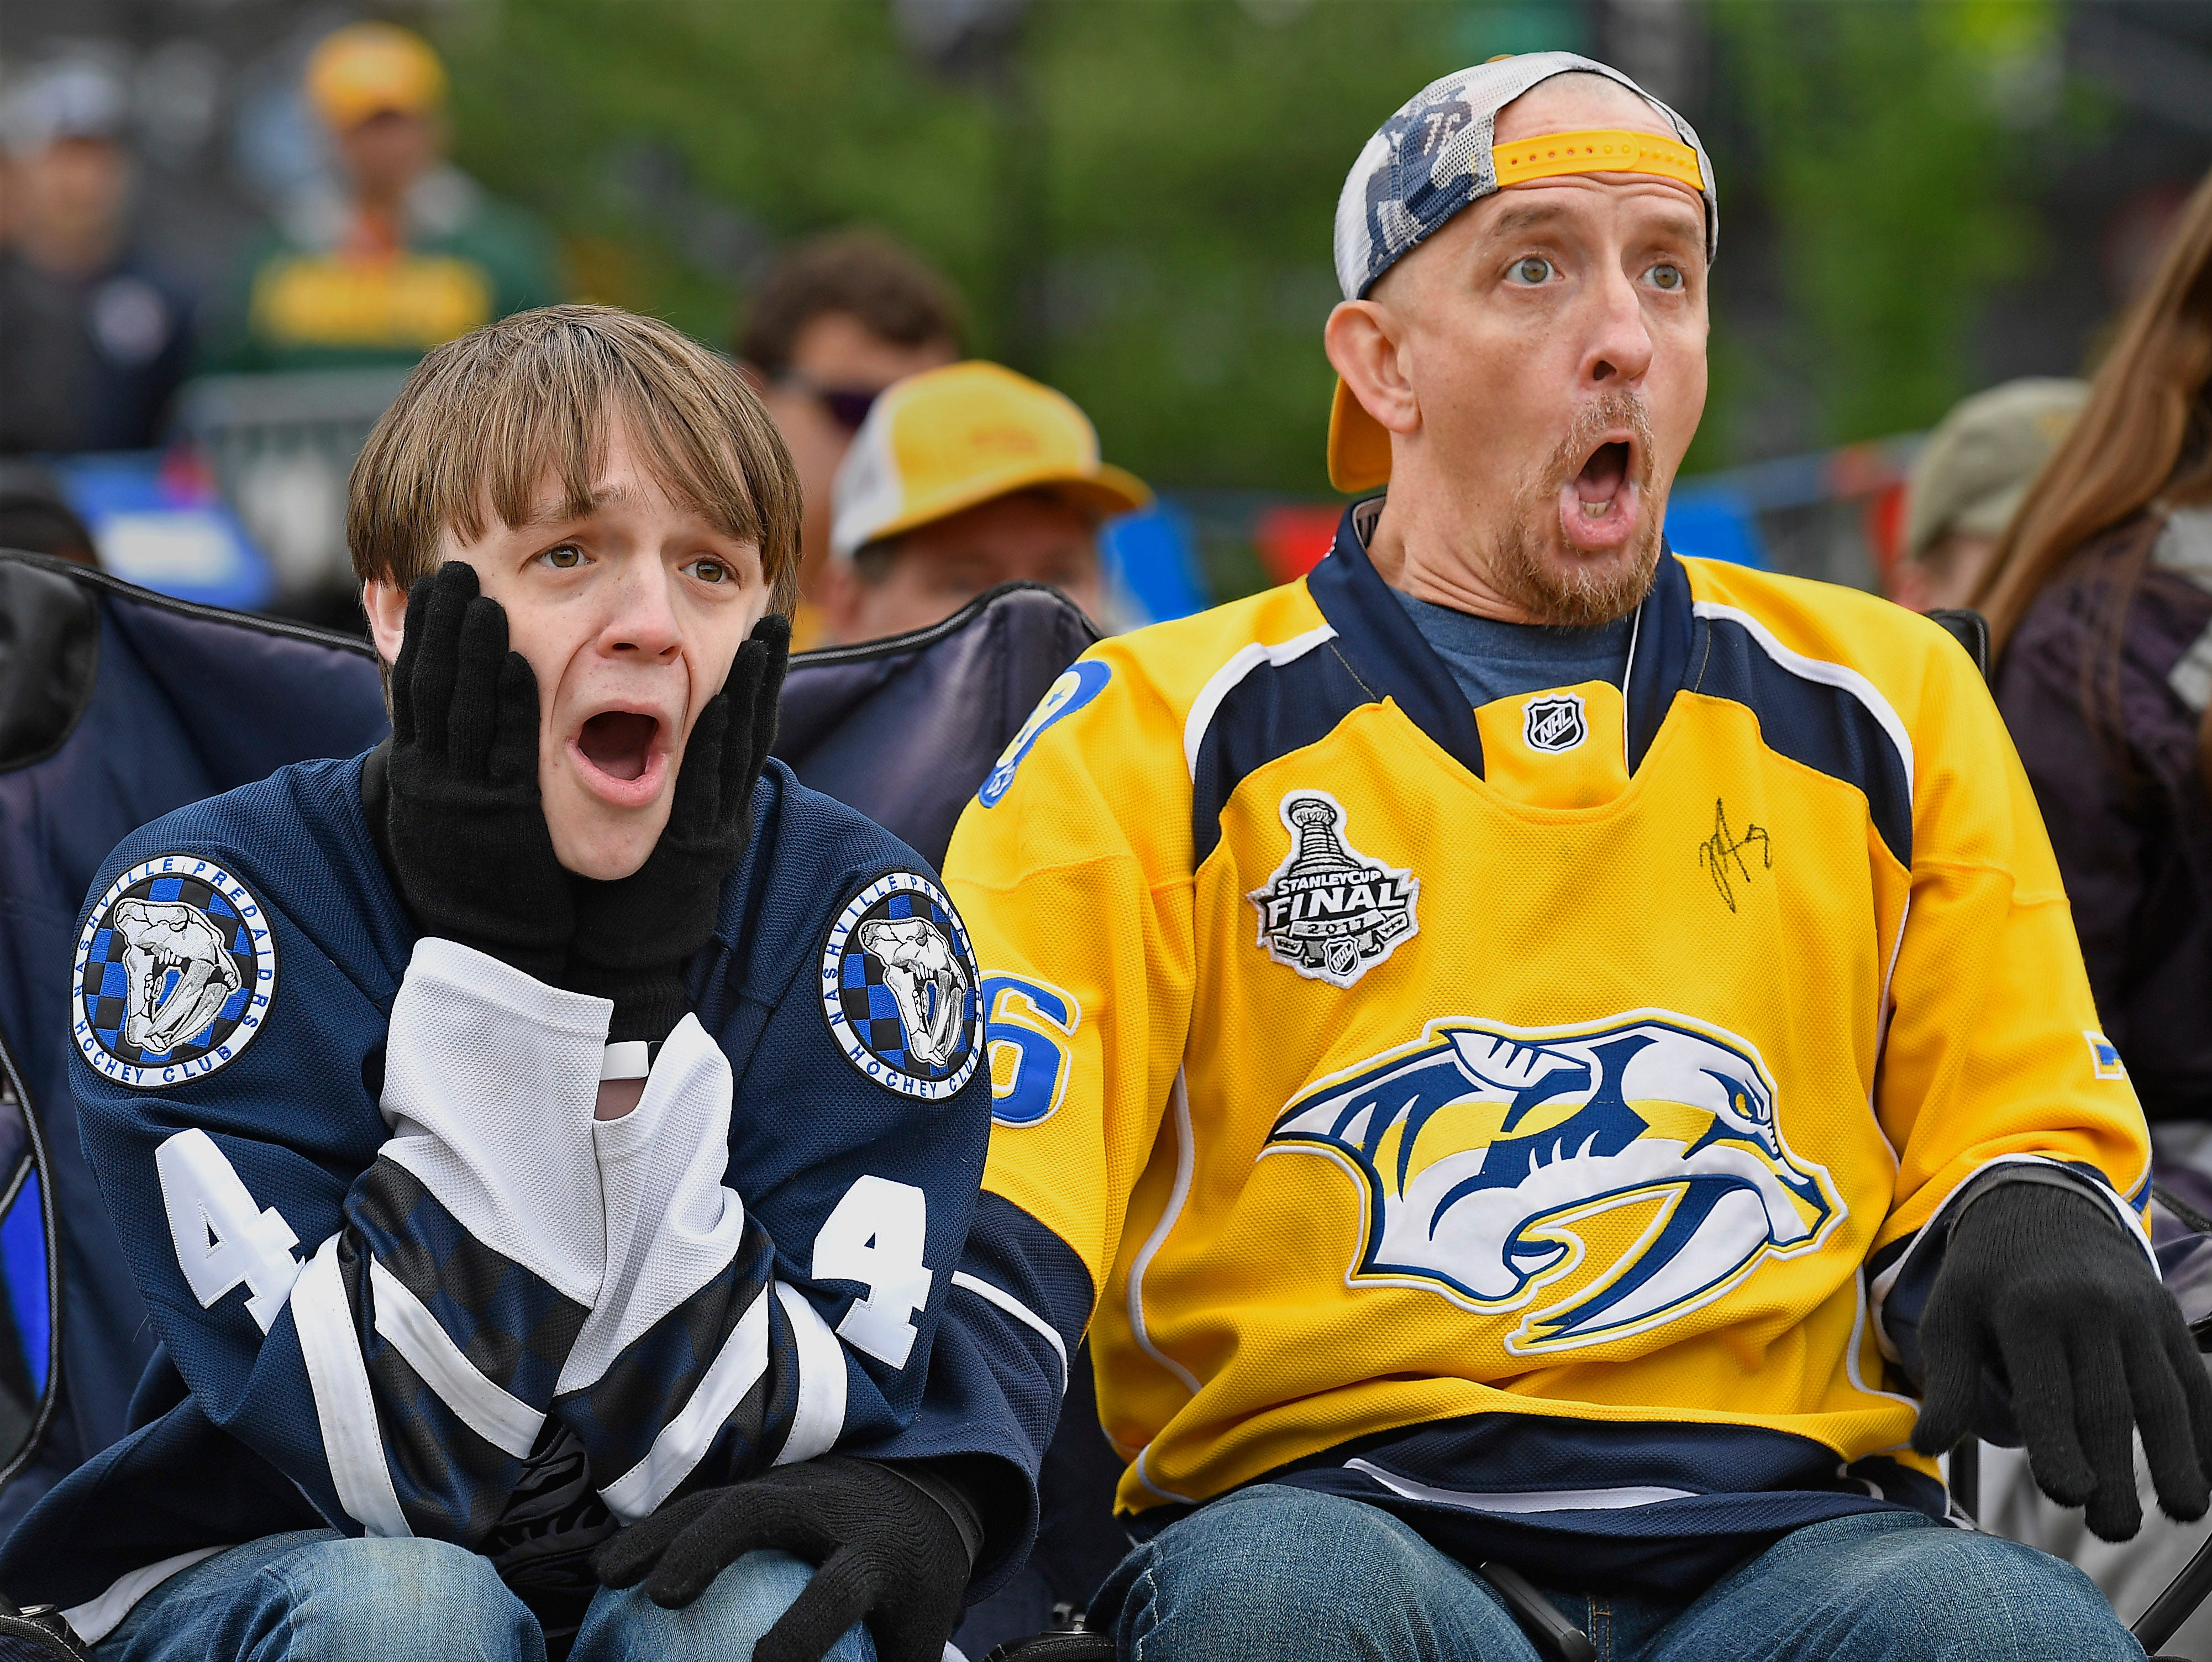 Riley Campbell and his father Jonathan gasp as the Stars score a goal in the first period during the watch party of the divisional semifinal game at Bridgestone Arena Saturday, April 20, 2019, in Nashville, Tenn.